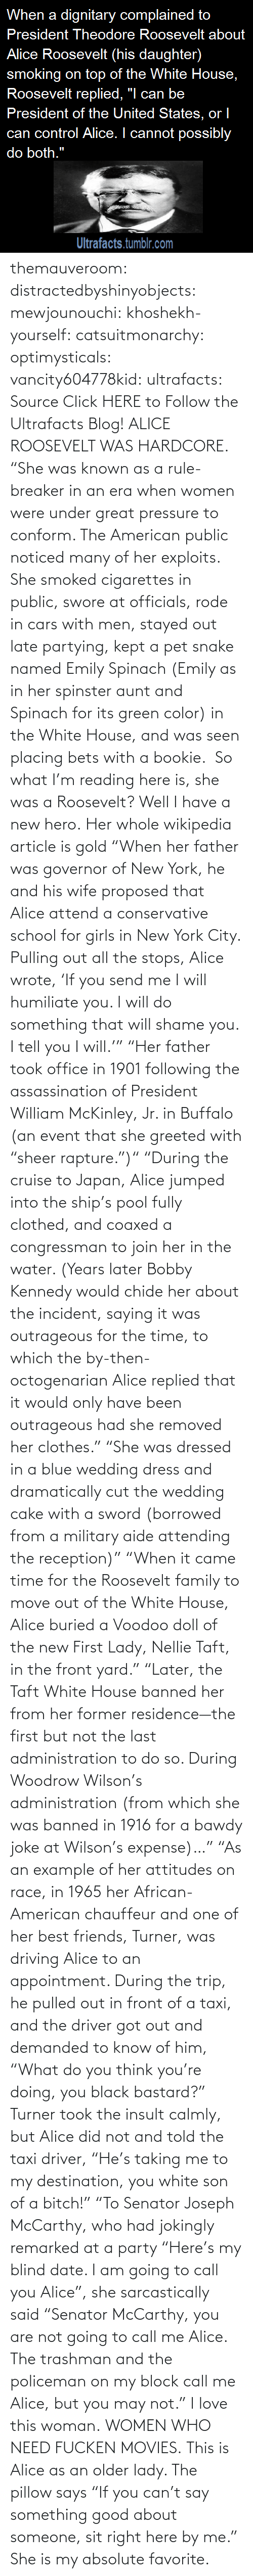 "Cut: themauveroom: distractedbyshinyobjects:  mewjounouchi:  khoshekh-yourself:  catsuitmonarchy:  optimysticals:  vancity604778kid:  ultrafacts:     Source Click HERE to Follow the Ultrafacts Blog!     ALICE ROOSEVELT WAS HARDCORE. ""She was known as a rule-breaker in an era when women were under great pressure to conform. The American public noticed many of her exploits. She smoked cigarettes in public, swore at officials, rode in cars with men, stayed out late partying, kept a pet snake named Emily Spinach (Emily as in her spinster aunt and Spinach for its green color) in the White House, and was seen placing bets with a bookie.    So what I'm reading here is, she was a Roosevelt?  Well I have a new hero.  Her whole wikipedia article is gold ""When her father was governor of New York, he and his wife proposed that Alice attend a conservative school for girls in New York City. Pulling out all the stops, Alice wrote, 'If you send me I will humiliate you. I will do something that will shame you. I tell you I will.'"" ""Her father took office in 1901 following the assassination of President William McKinley, Jr. in Buffalo (an event that she greeted with ""sheer rapture."")"" ""During the cruise to Japan, Alice jumped into the ship's pool fully clothed, and coaxed a congressman to join her in the water. (Years later Bobby Kennedy would chide her about the incident, saying it was outrageous for the time, to which the by-then-octogenarian Alice replied that it would only have been outrageous had she removed her clothes."" ""She was dressed in a blue wedding dress and dramatically cut the wedding cake with a sword (borrowed from a military aide attending the reception)"" ""When it came time for the Roosevelt family to move out of the White House, Alice buried a Voodoo doll of the new First Lady, Nellie Taft, in the front yard."" ""Later, the Taft White House banned her from her former residence—the first but not the last administration to do so. During Woodrow Wilson's administration (from which she was banned in 1916 for a bawdy joke at Wilson's expense)…"" ""As an example of her attitudes on race, in 1965 her African-American chauffeur and one of her best friends, Turner, was driving Alice to an appointment. During the trip, he pulled out in front of a taxi, and the driver got out and demanded to know of him, ""What do you think you're doing, you black bastard?"" Turner took the insult calmly, but Alice did not and told the taxi driver, ""He's taking me to my destination, you white son of a bitch!"" ""To Senator Joseph McCarthy, who had jokingly remarked at a party ""Here's my blind date. I am going to call you Alice"", she sarcastically said ""Senator McCarthy, you are not going to call me Alice. The trashman and the policeman on my block call me Alice, but you may not.""  I love this woman.  WOMEN WHO NEED FUCKEN MOVIES.   This is Alice as an older lady. The pillow says ""If you can't say something good about someone, sit right here by me.""  She is my absolute favorite."